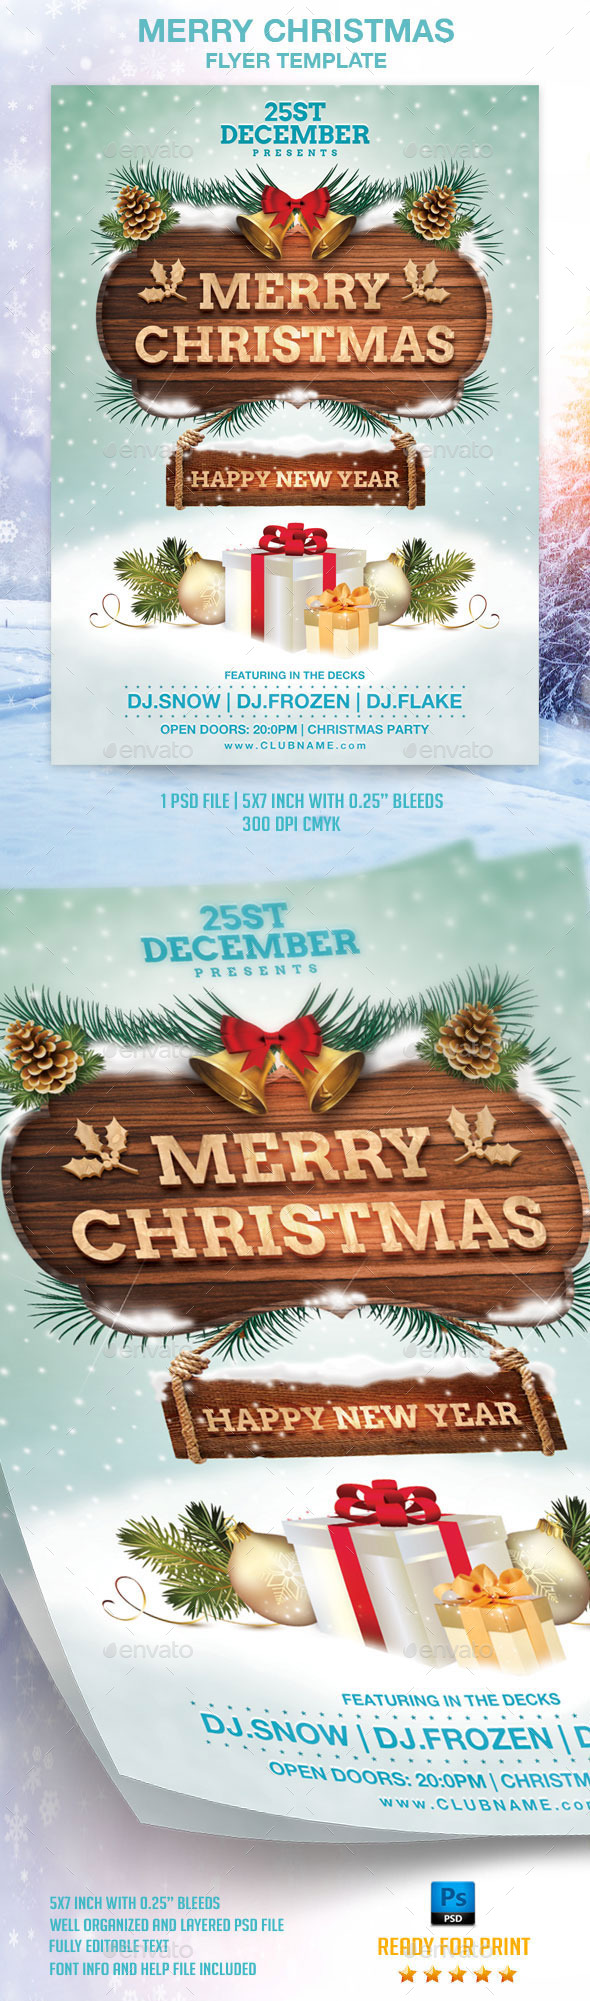 GraphicRiver Merry Christmas Flyer Template 9635254